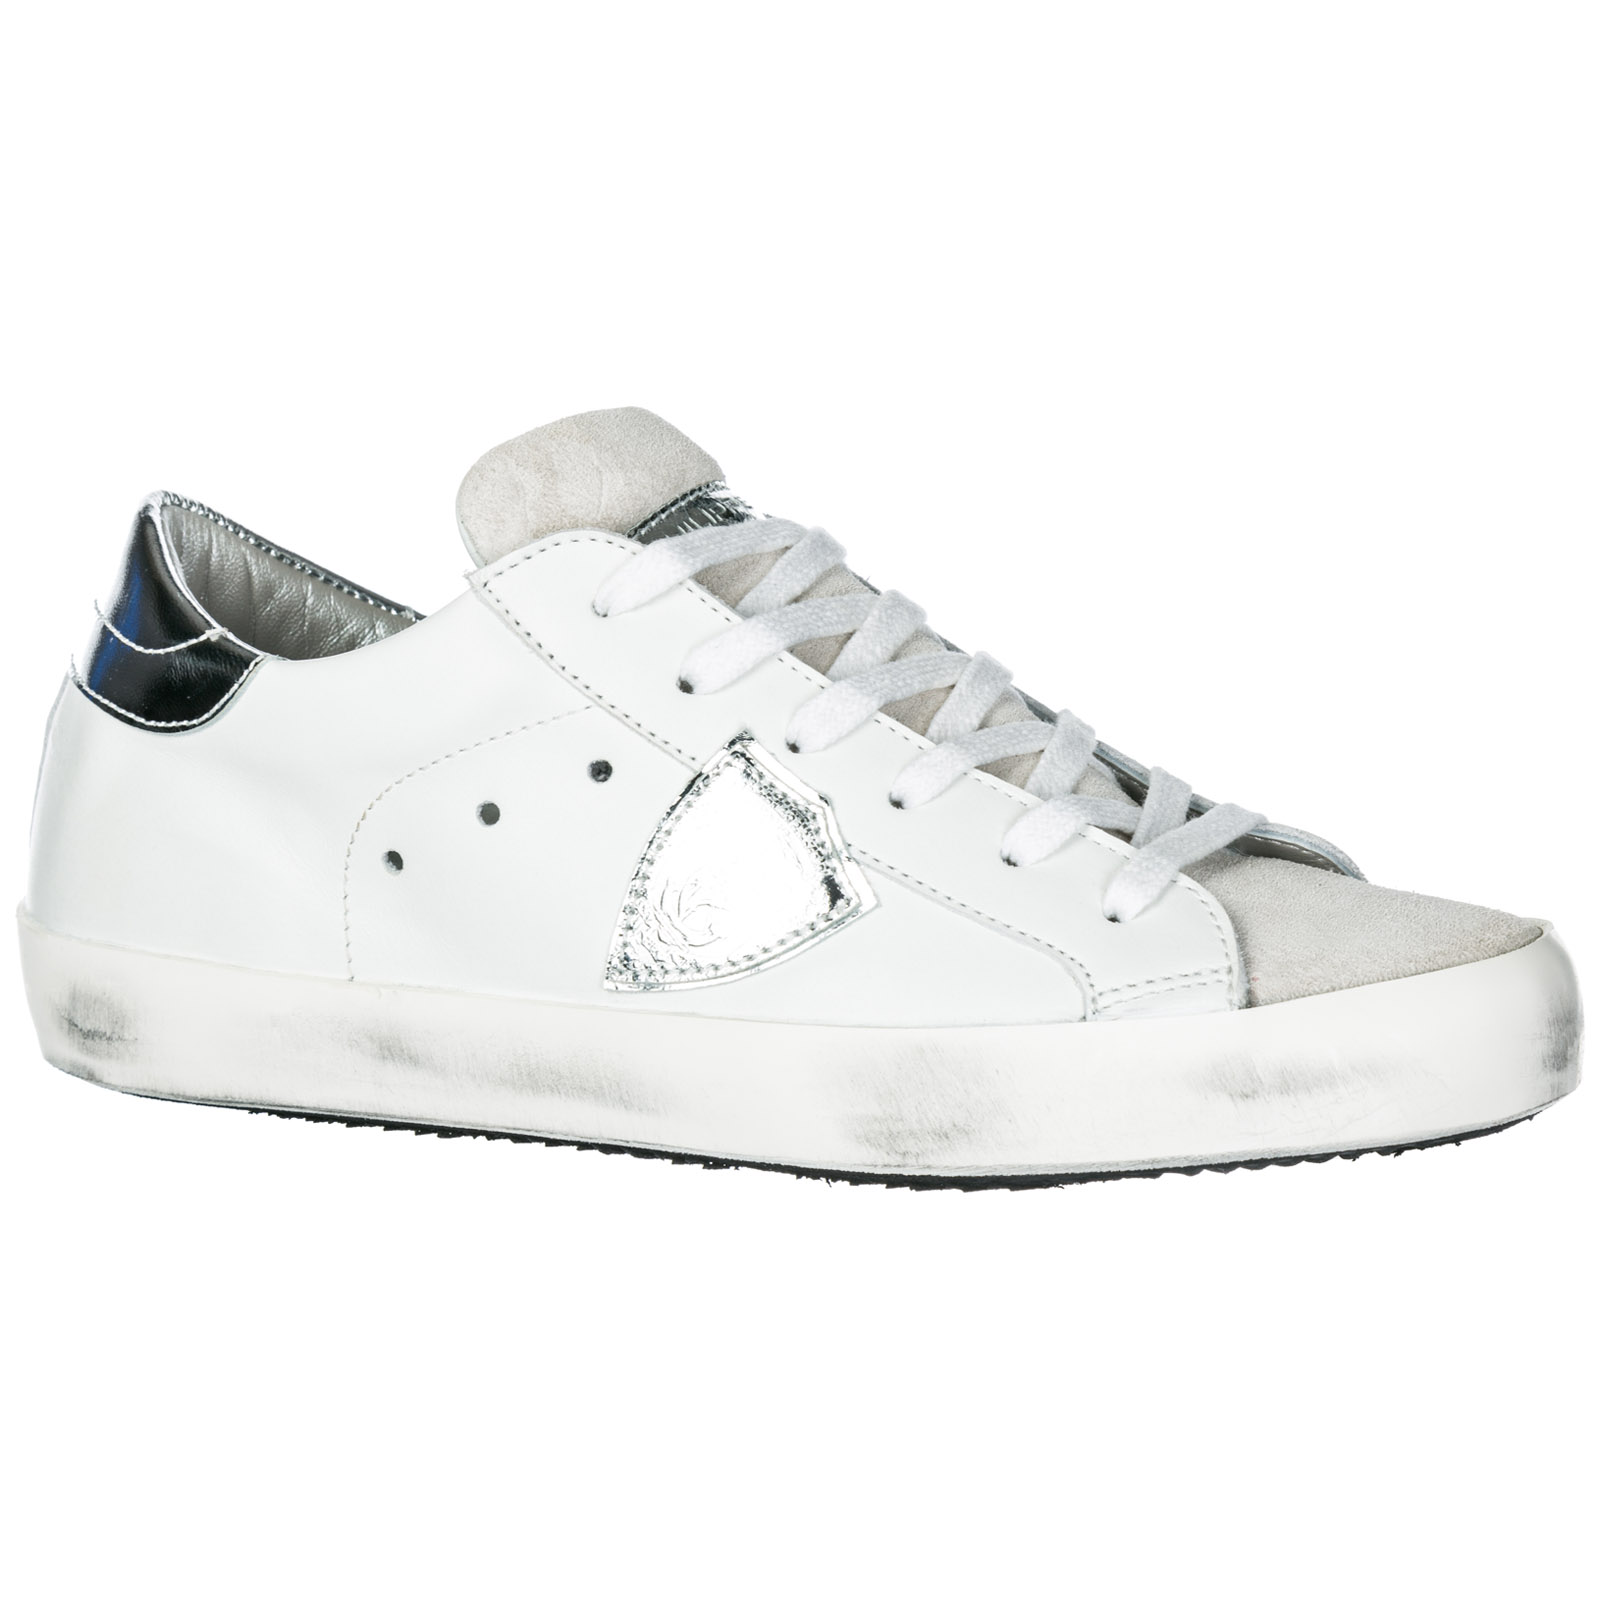 46ac6760f785e1 Basket Philippe Model Paris A1UNCLLD1005 basic blanc silver | FRMODA.com